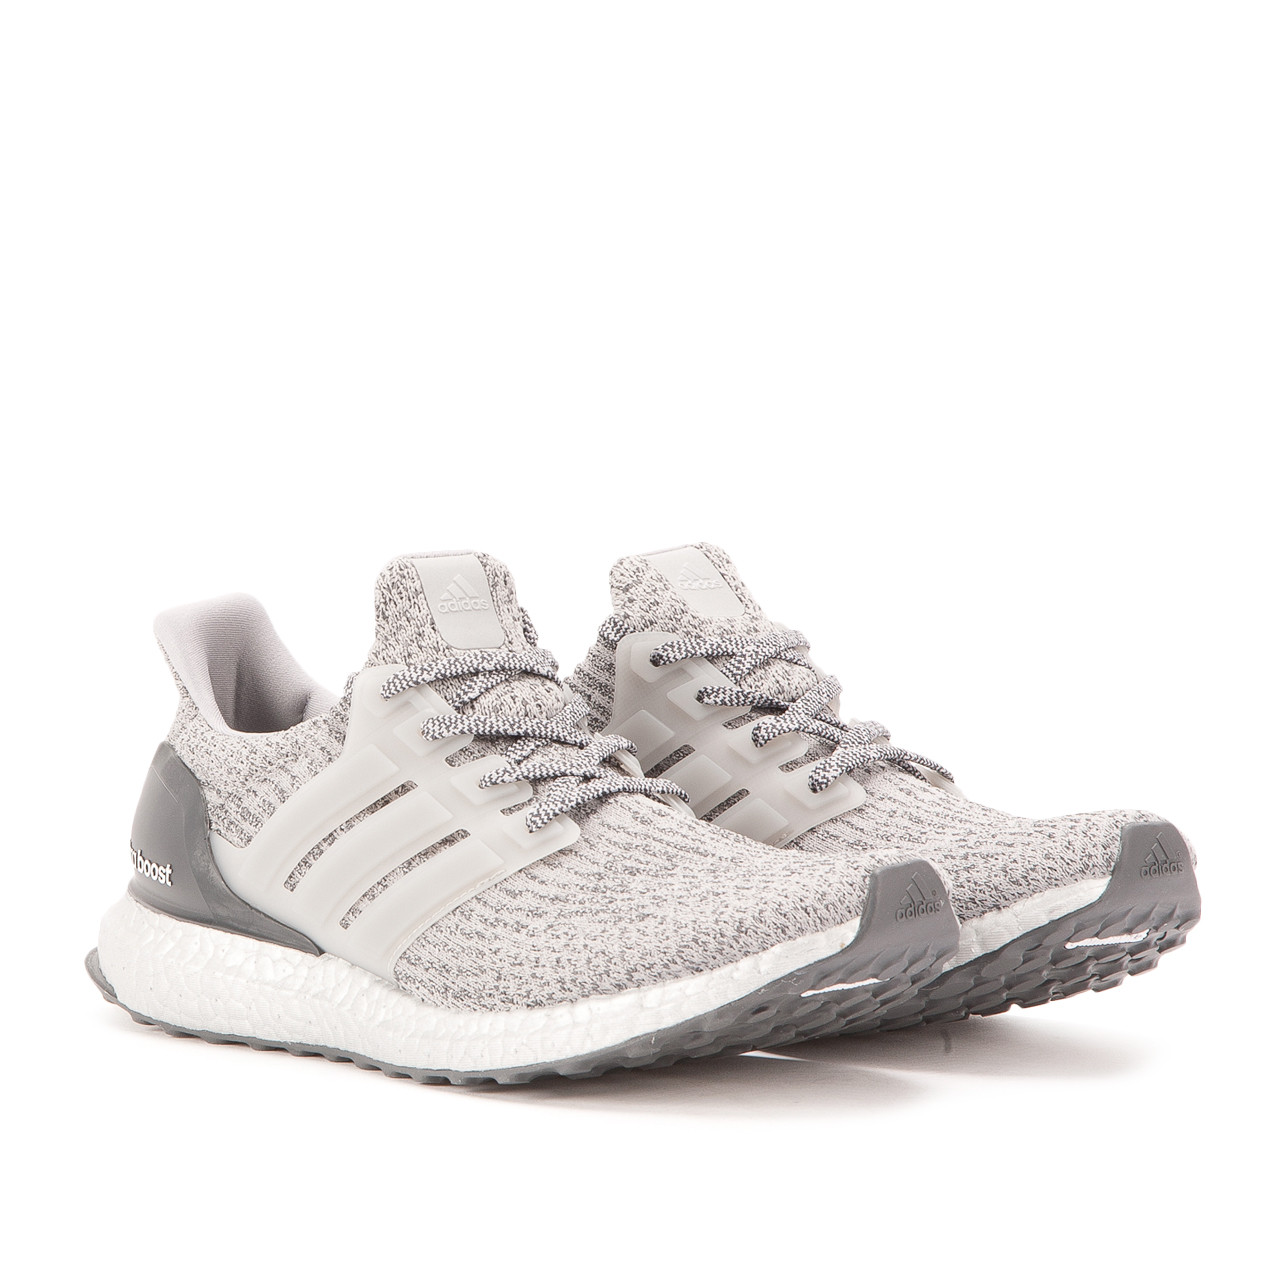 "Schuh Silber Adidas Ultra Boost 3.0 ""superbowl Edition"" (silver) Ba8143"